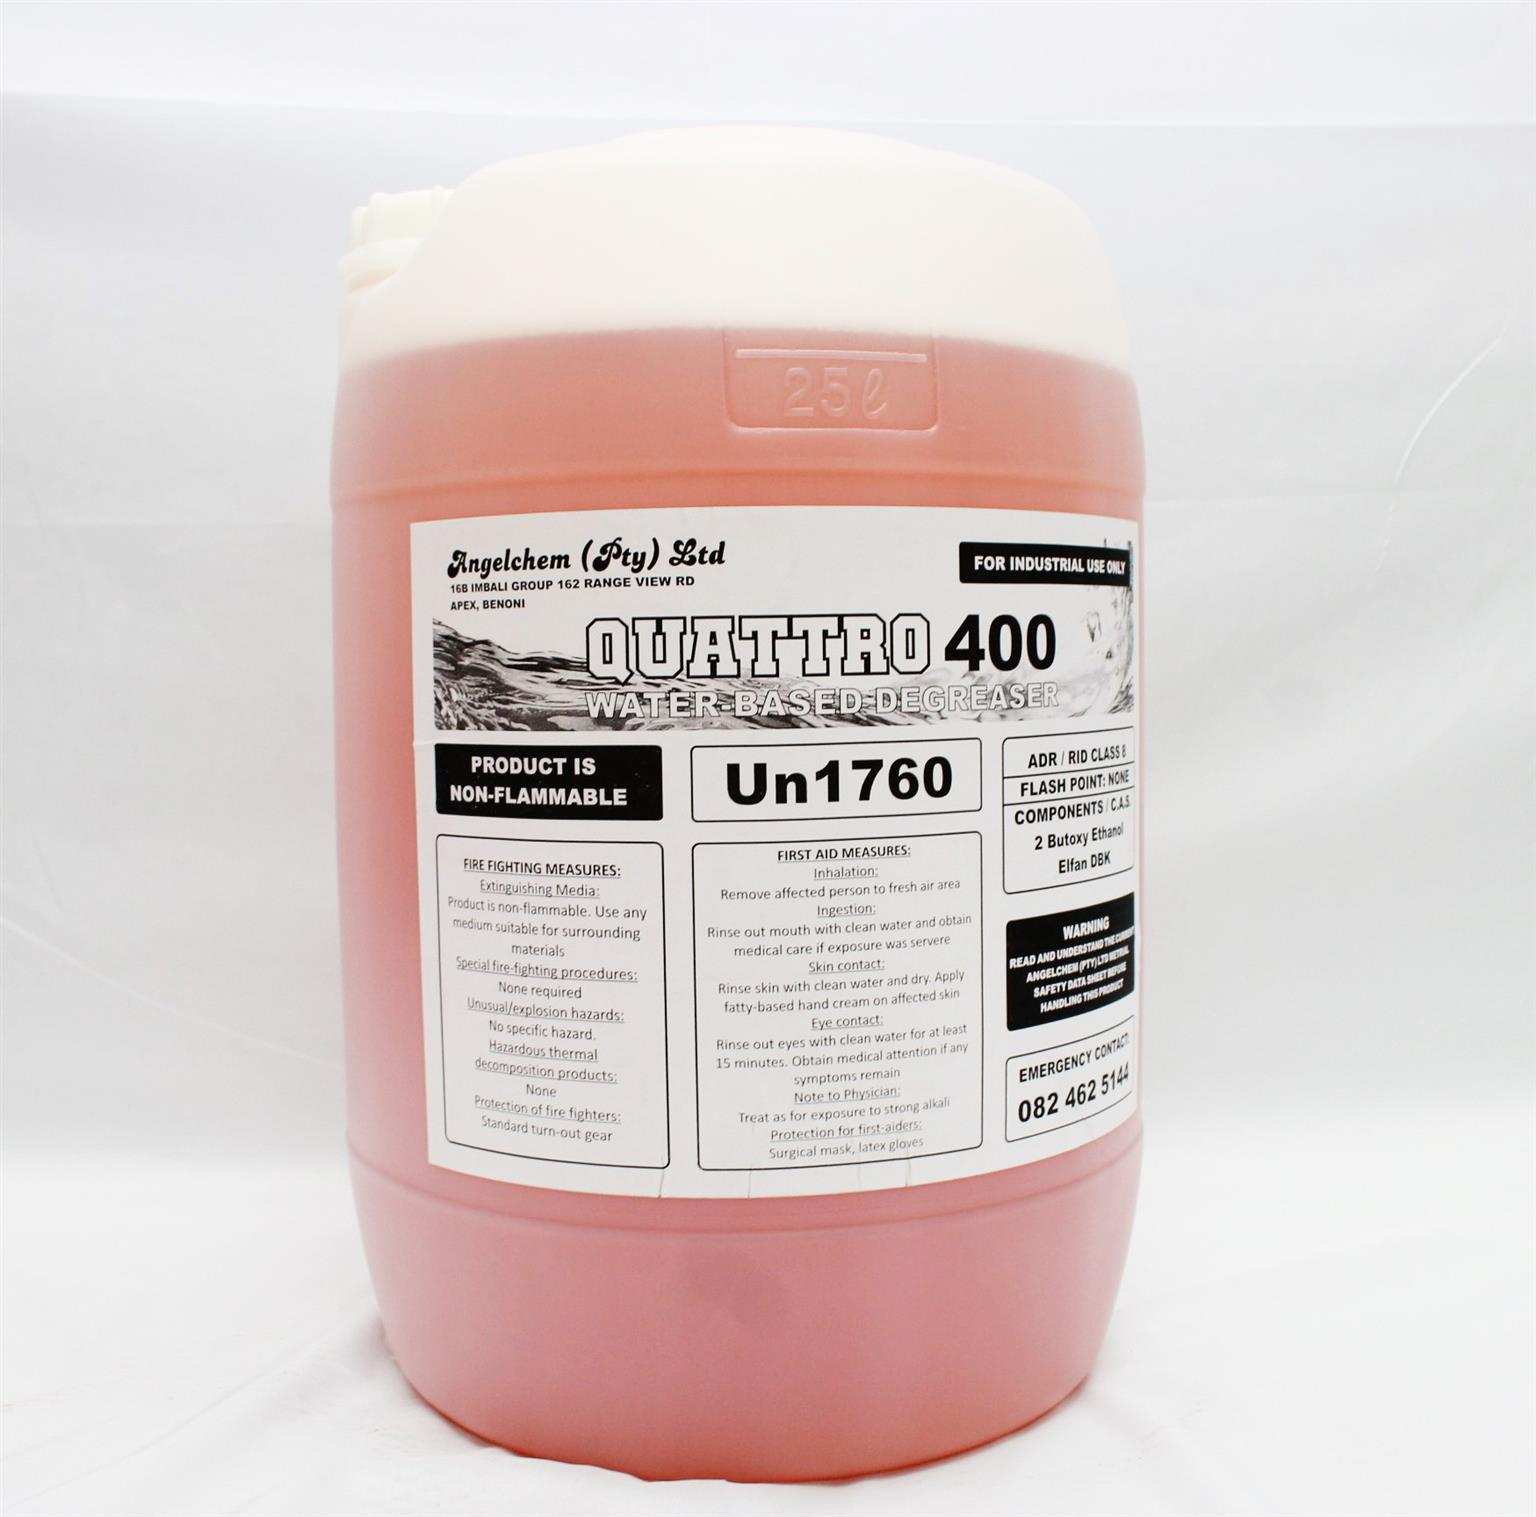 Quattro 400 Water based degreaser 25L